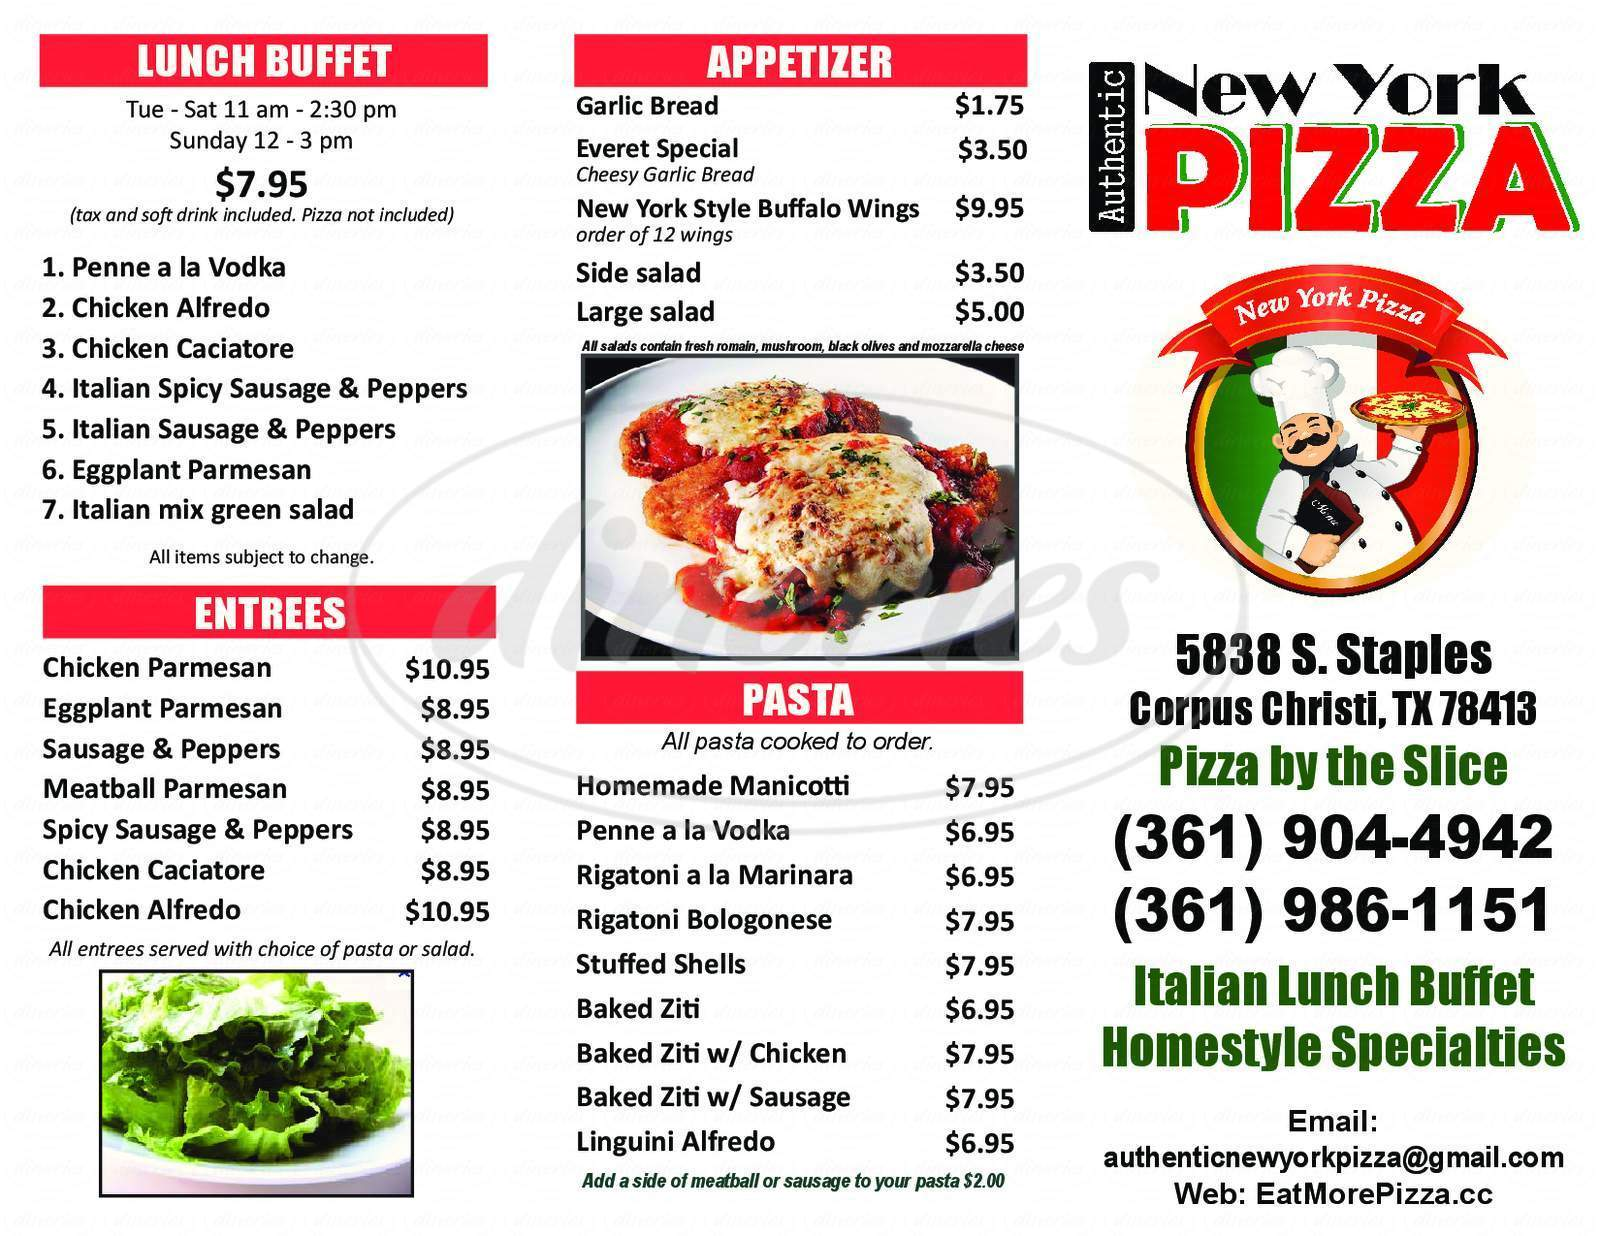 menu for Authentic New York Pizza